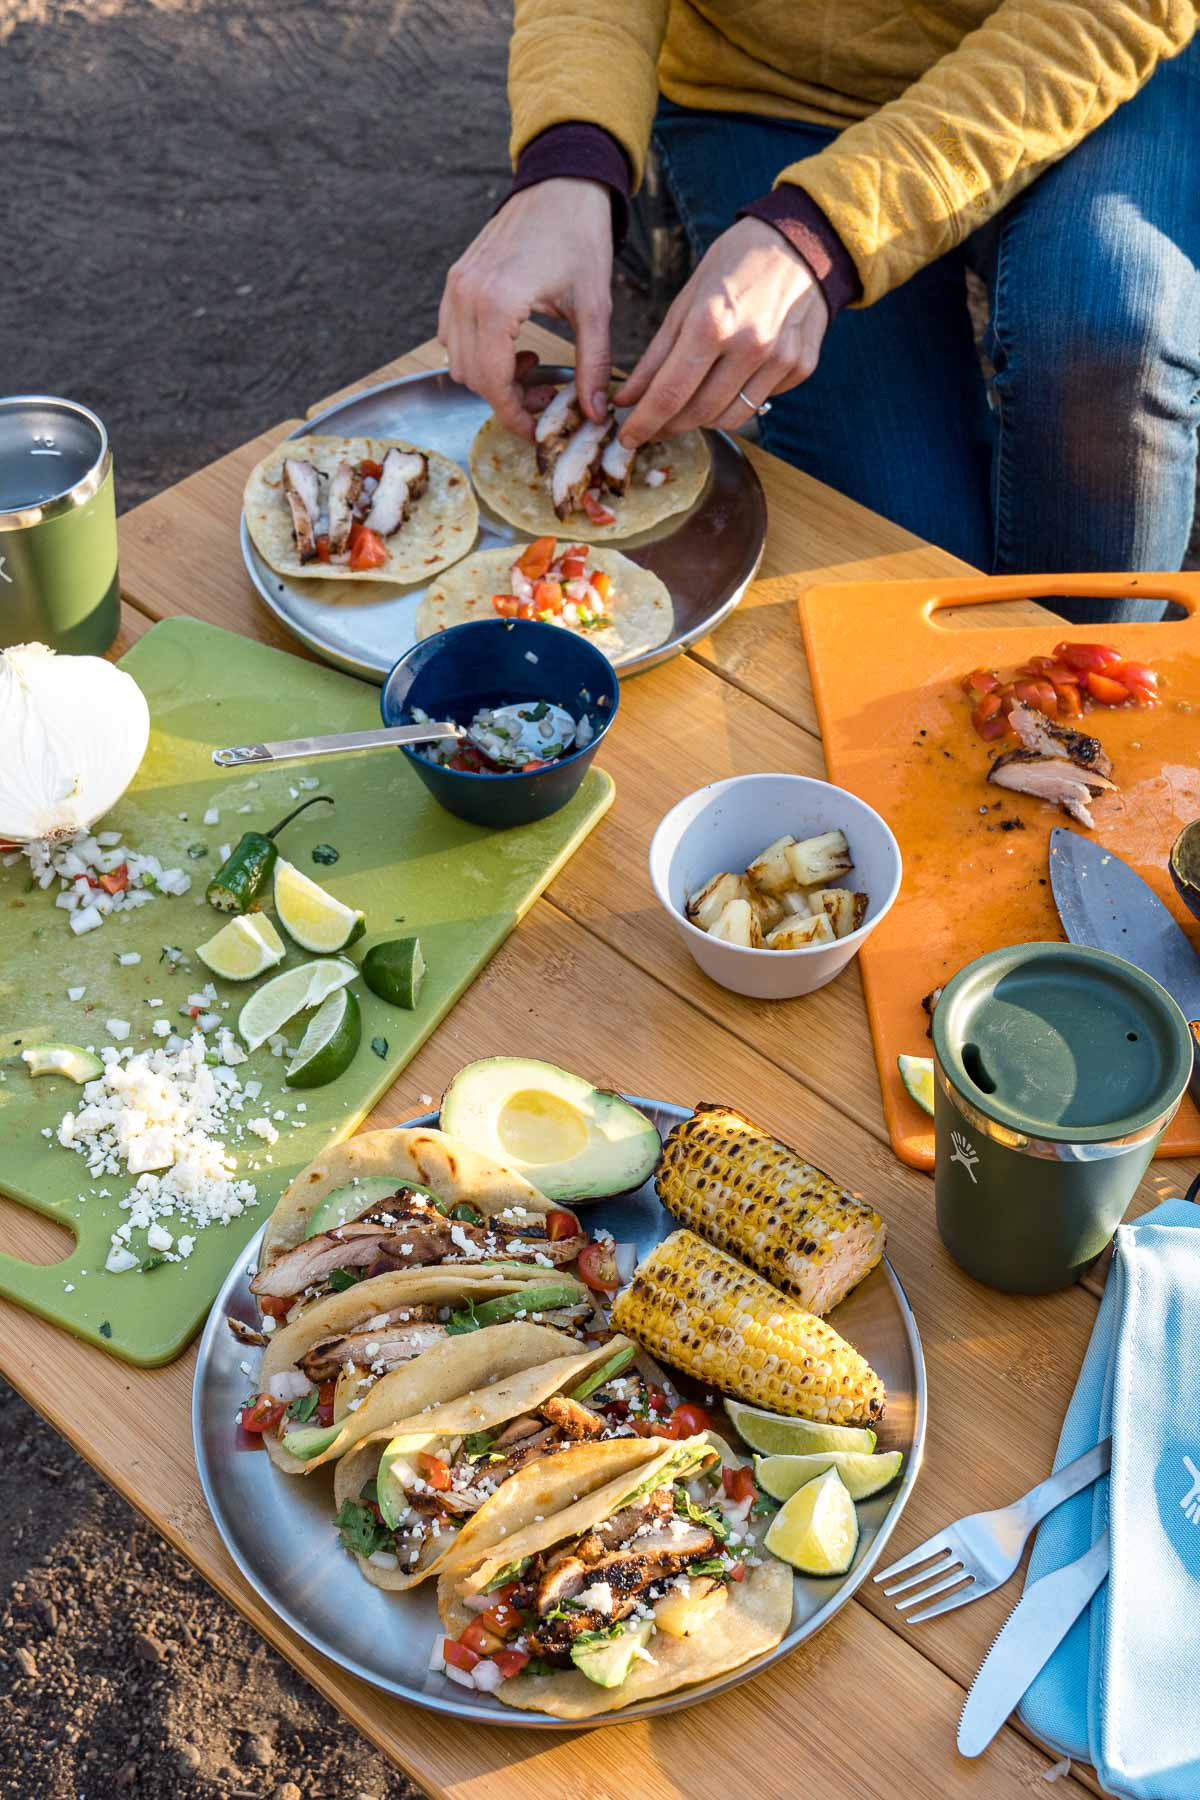 A table scene with a plate of tacos in the foreground and Megan's hands assembling tacos on a second plate